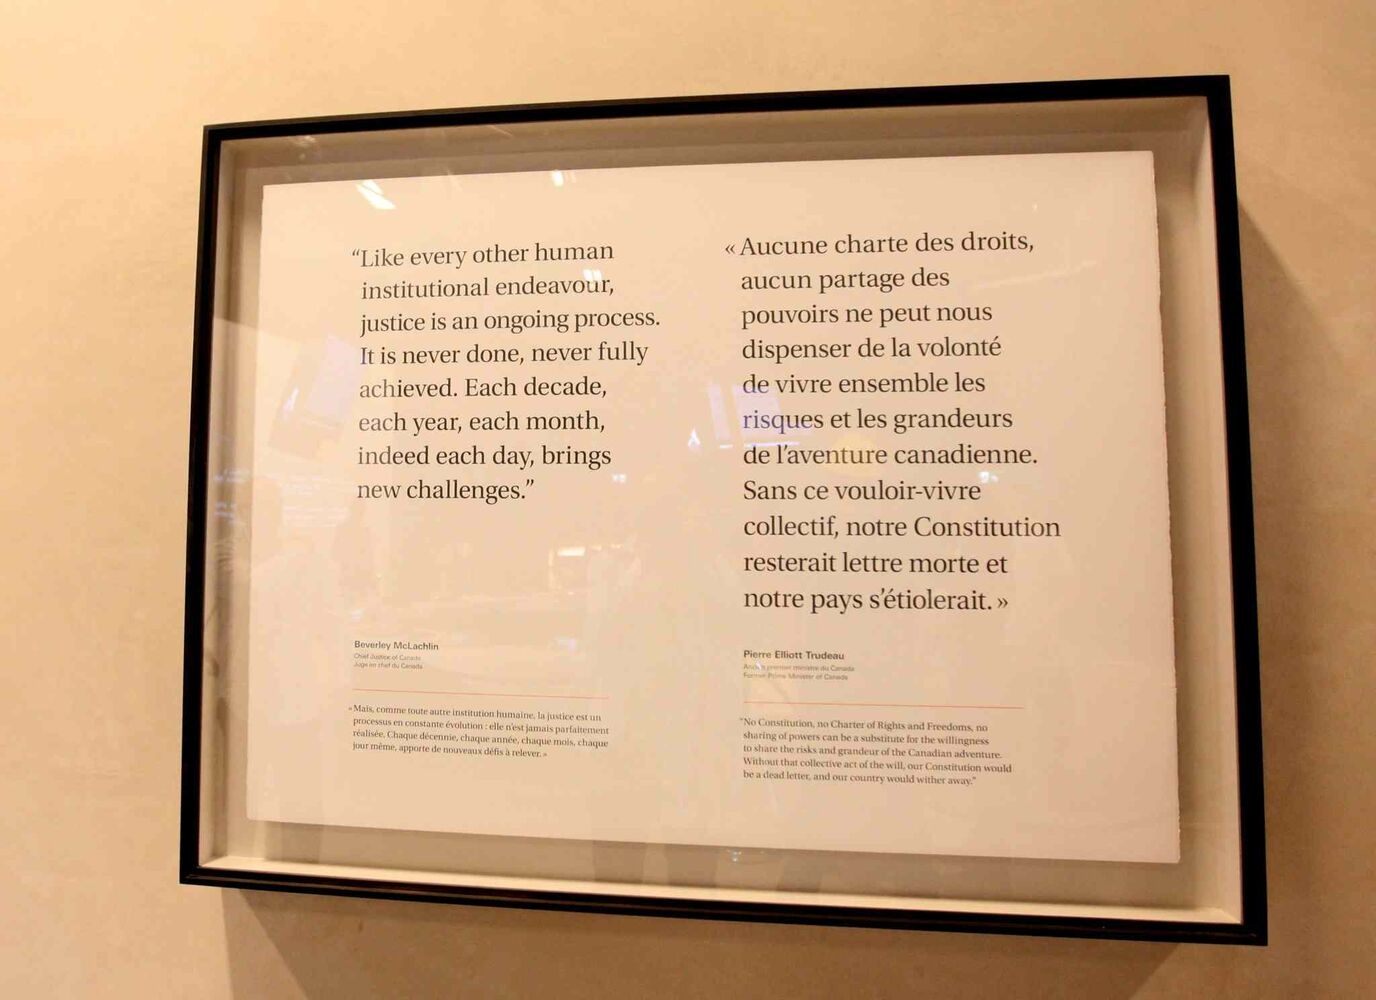 Gallery Installation #4 - Protecting Rights in Canada. (Ruth Bonneville / Winnipeg Free Press)